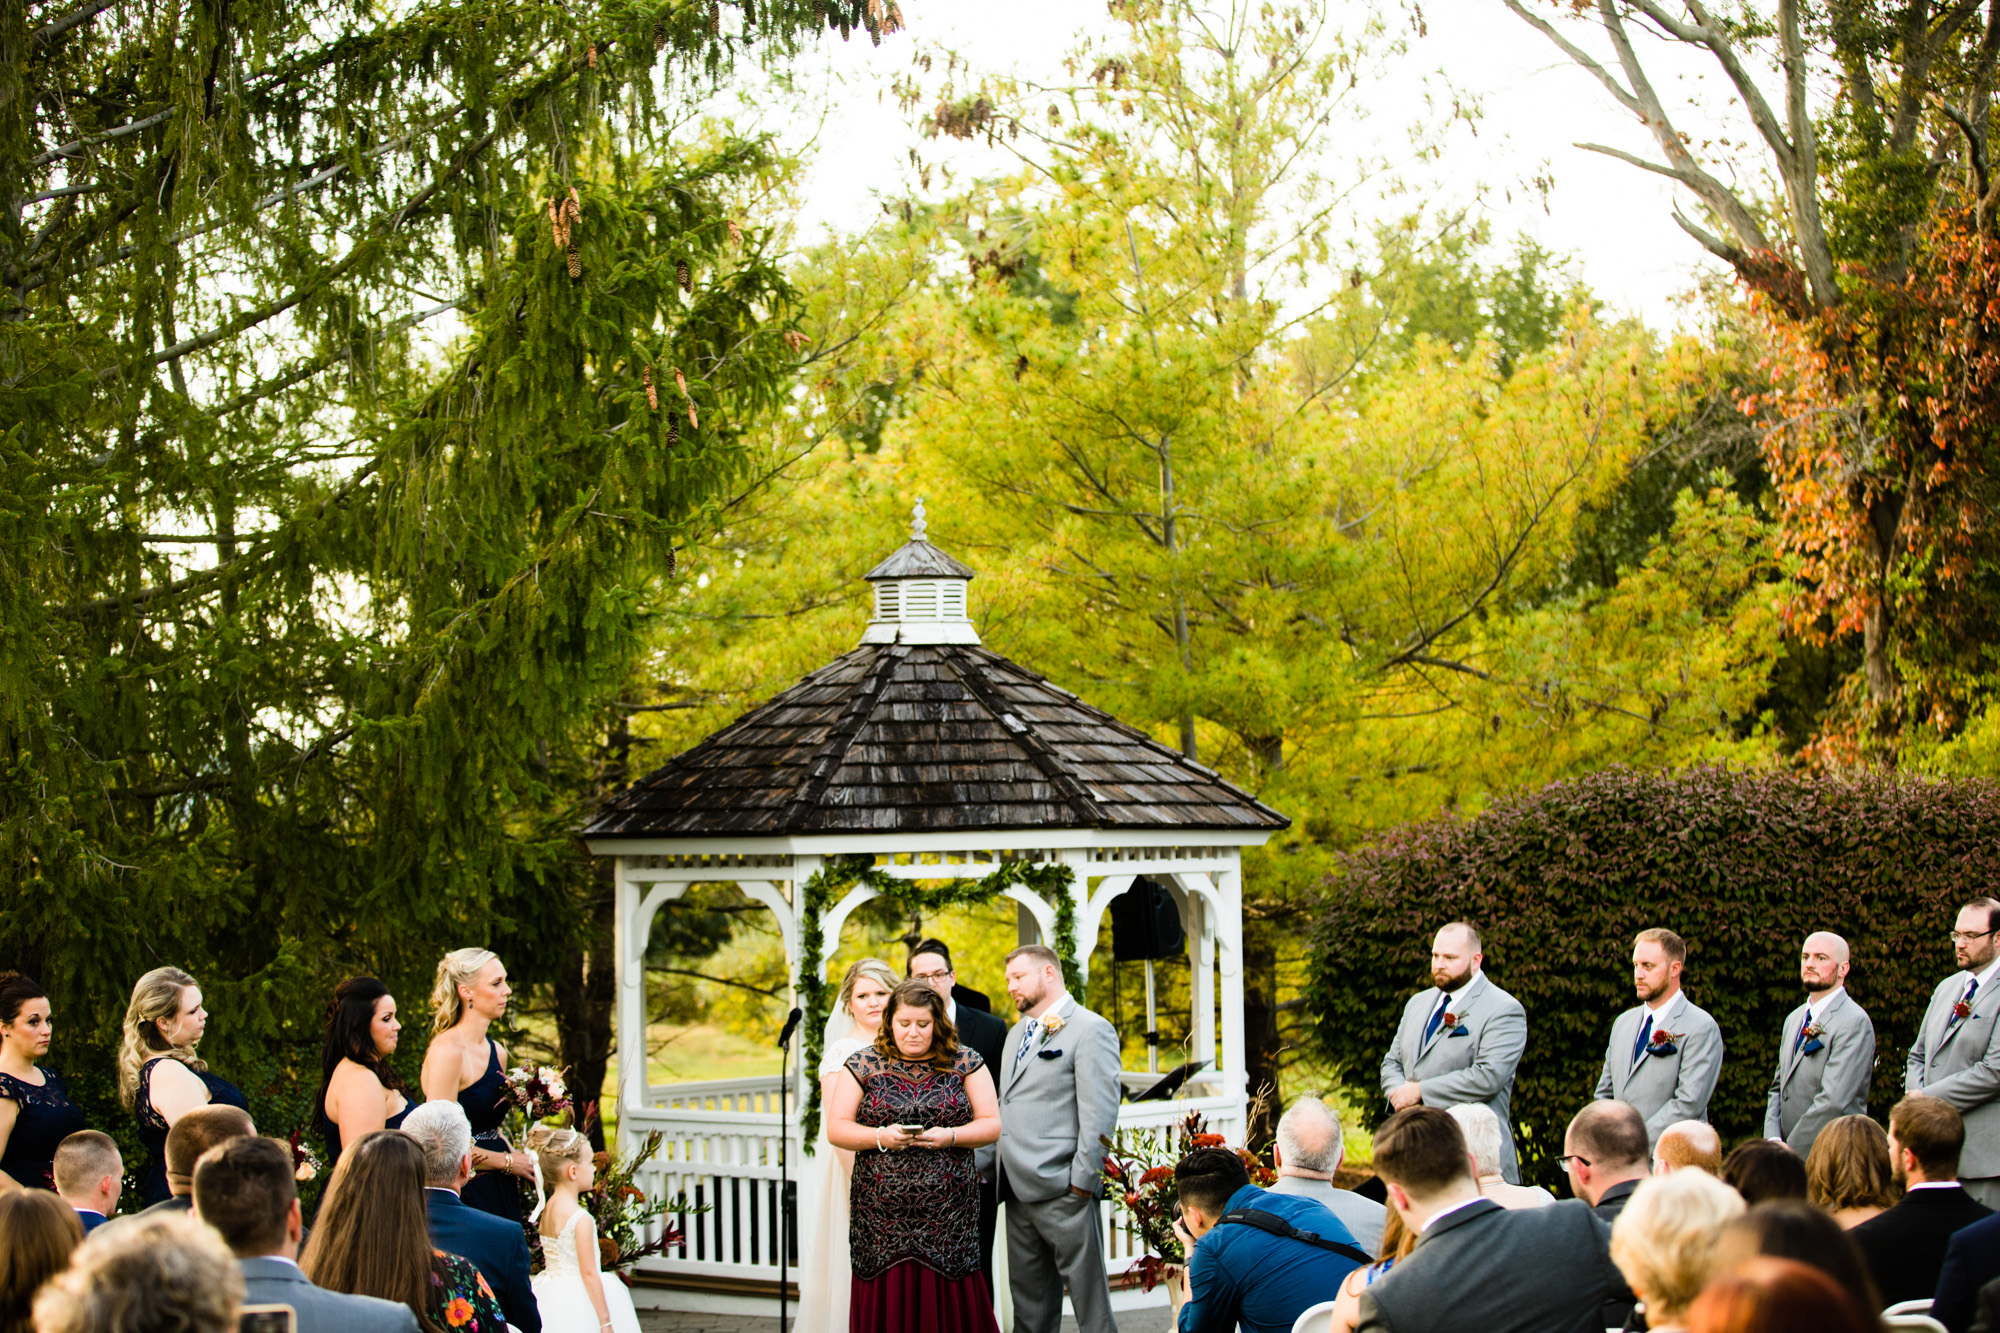 LOVESTRUCK PICTURES NORMANDY FARMS WEDDING - 061.jpg